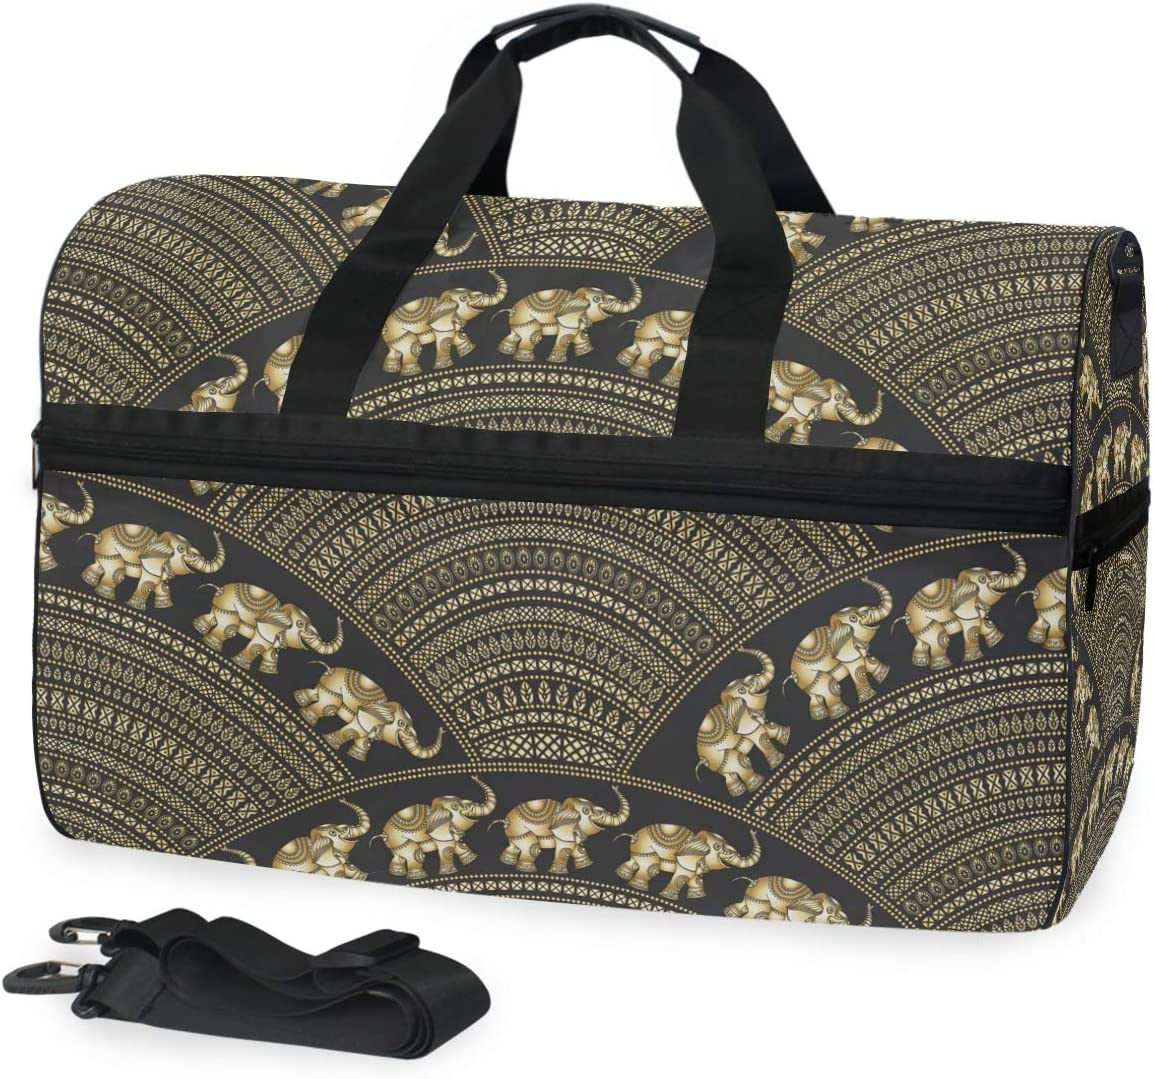 Ethnic Indian Elephant Sports Gym Bag with Shoes Compartment Travel Duffel Bag for Men and Women